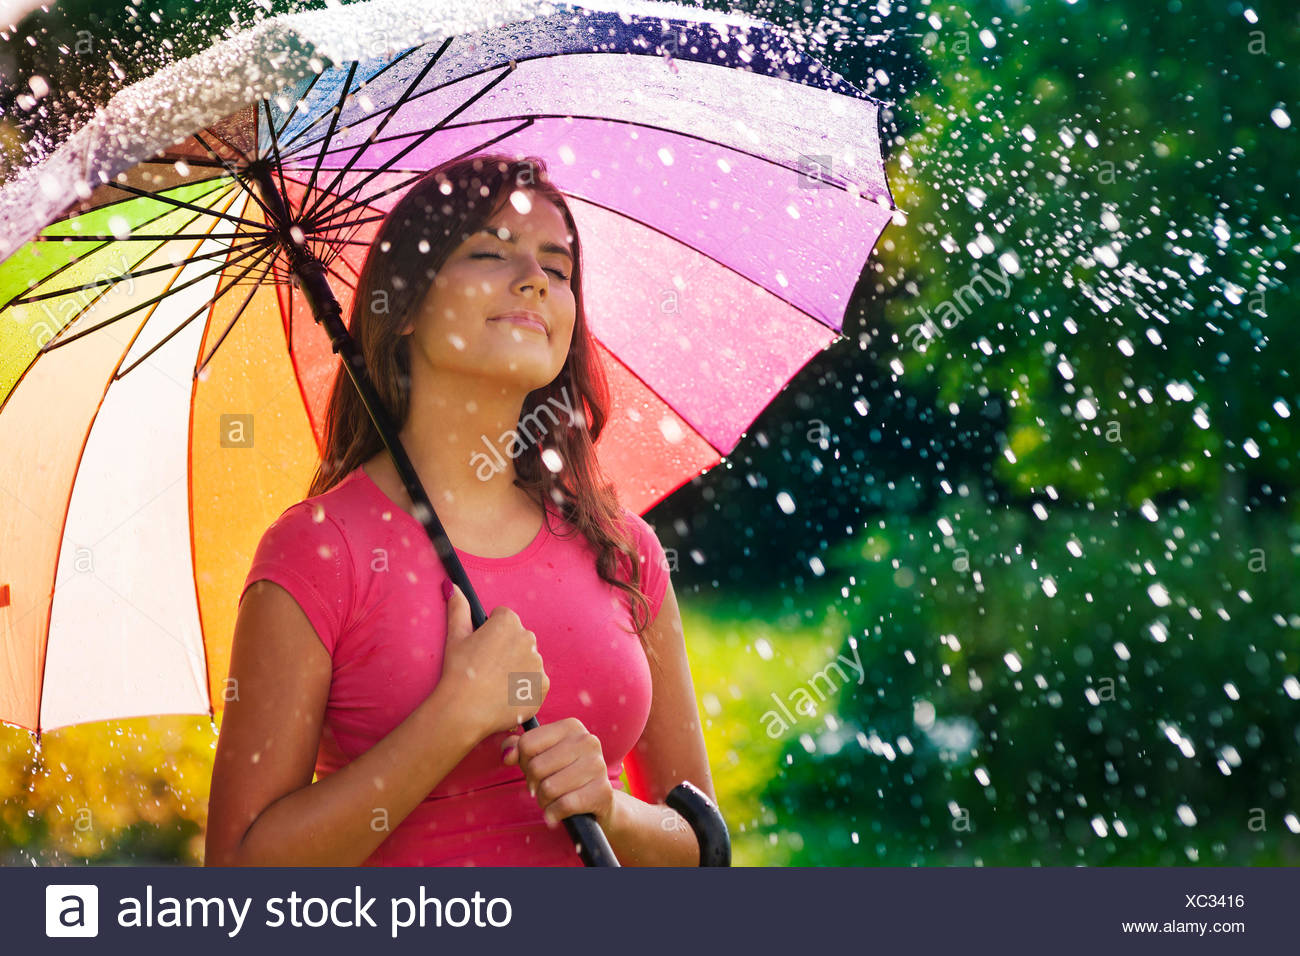 Young woman breathing fresh air during the spring rain  Debica, Poland - Stock Image